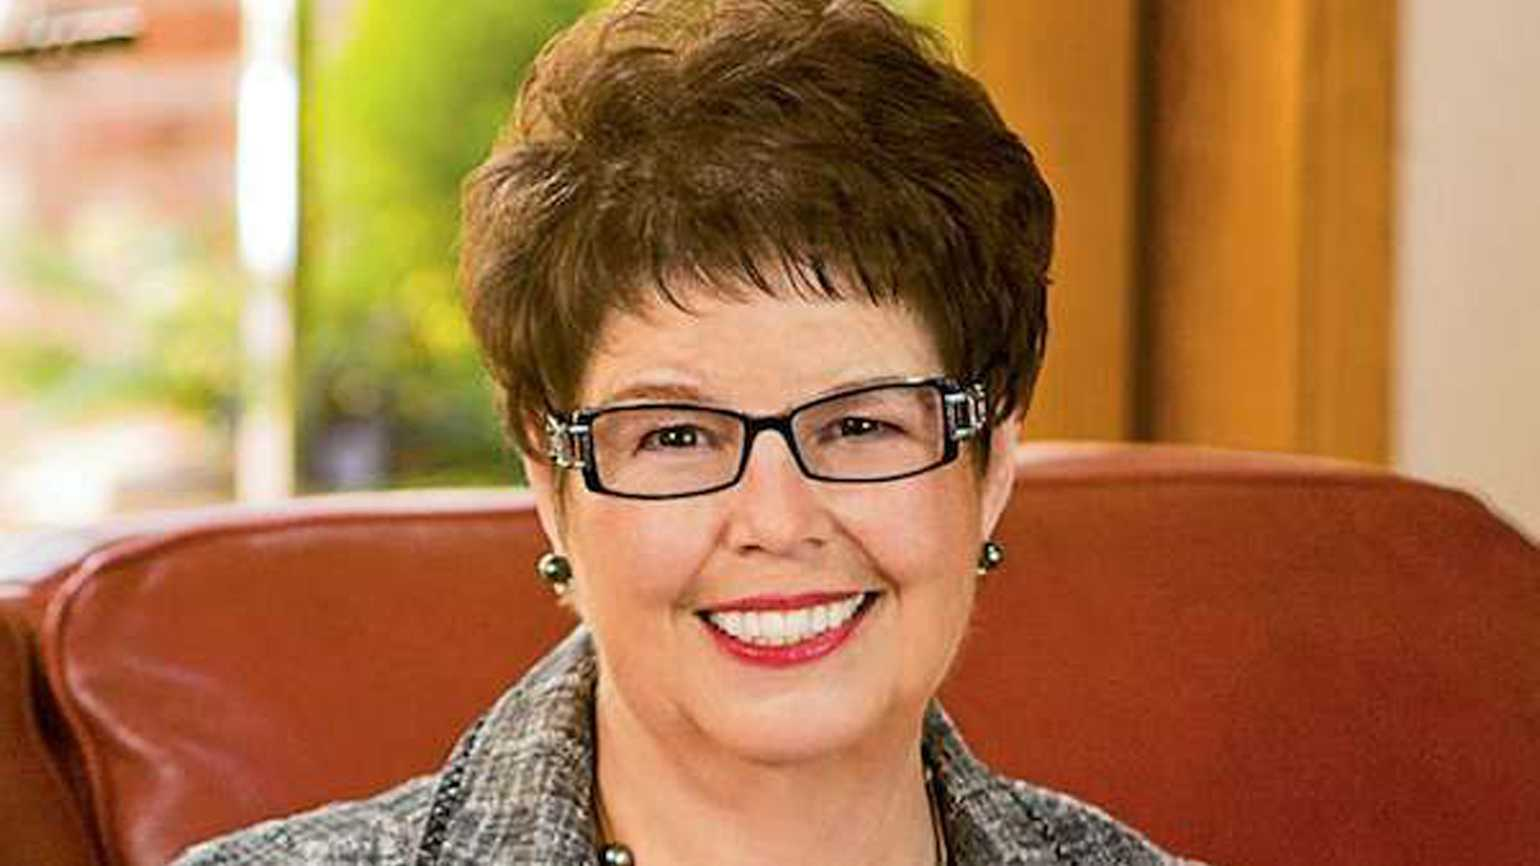 Debbie Macomber: Where Does Generosity Come From?